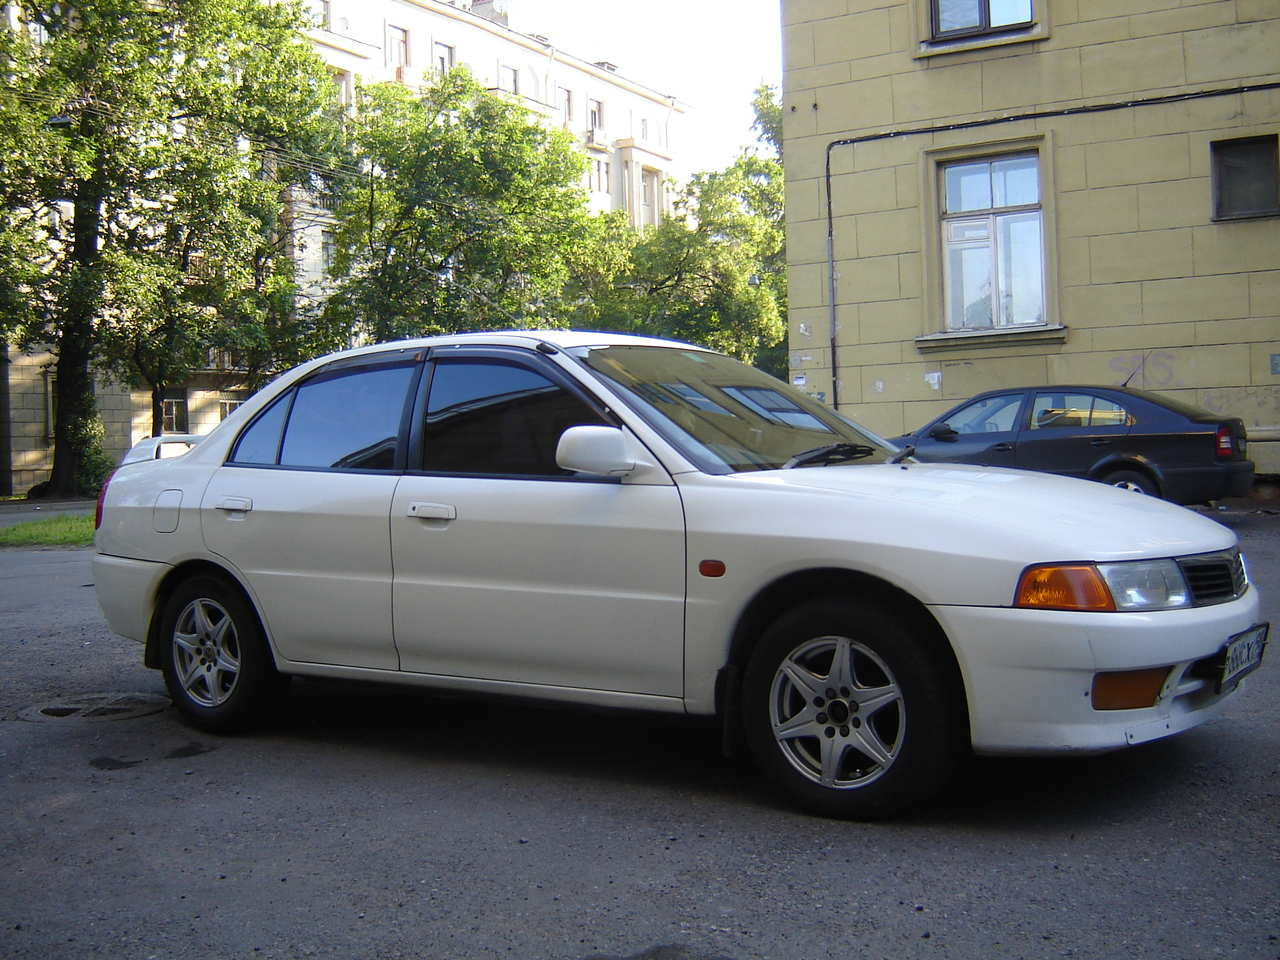 1998 Mitsubishi Lancer Photos, 1.5, Gasoline, FF, Automatic For Sale